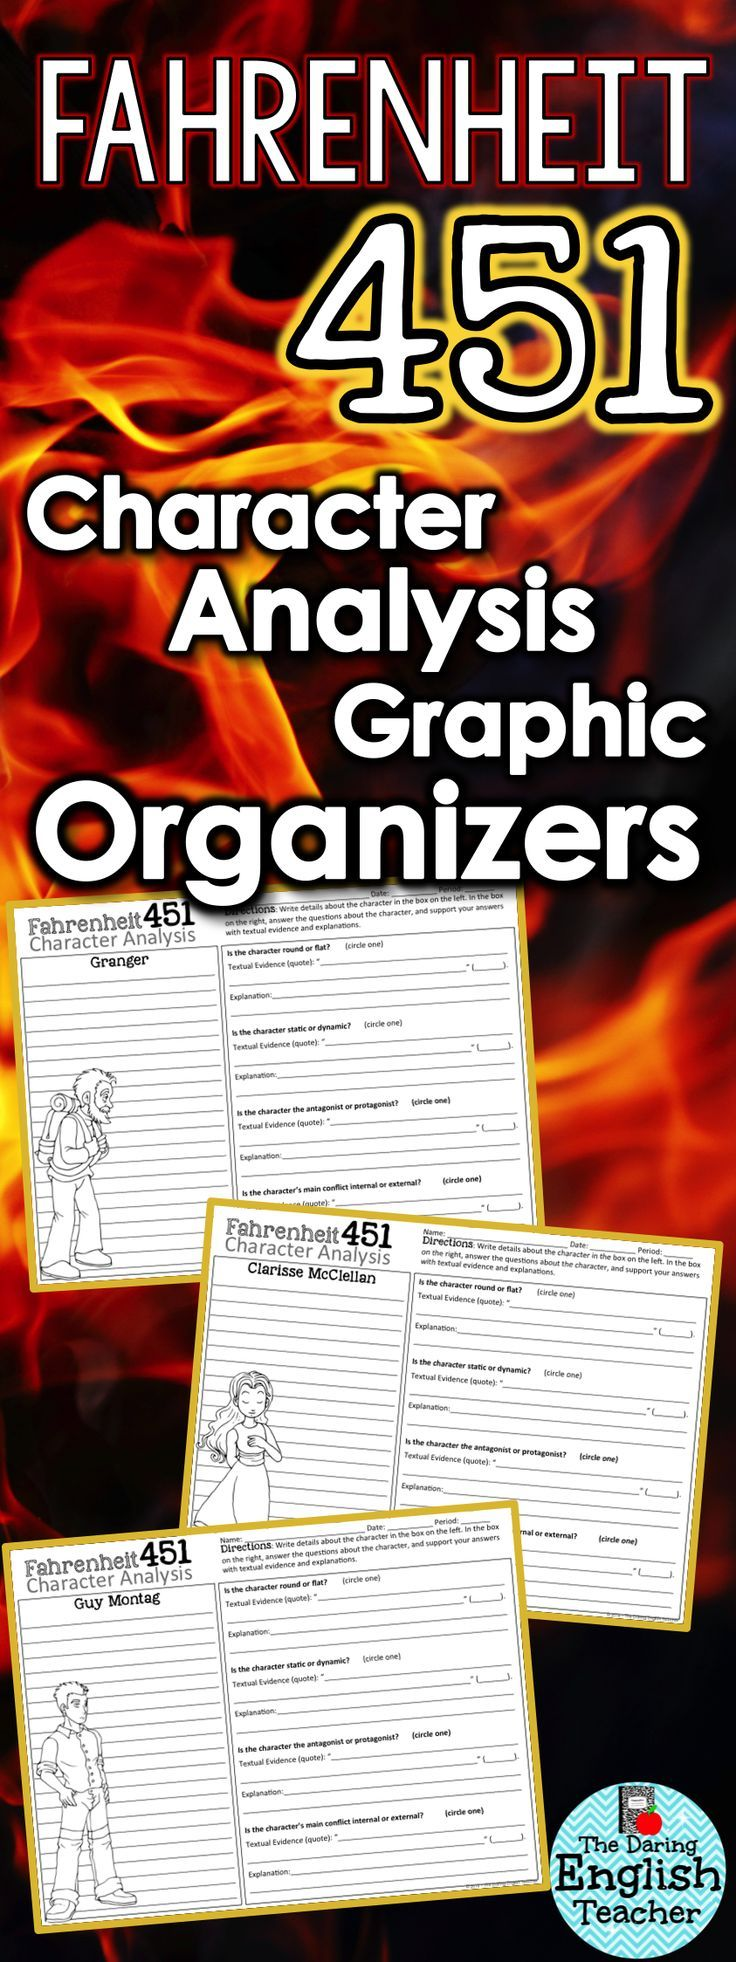 ideas about fahrenheit ray bradbury books fahrenheit 451 character analysis graphic organizers